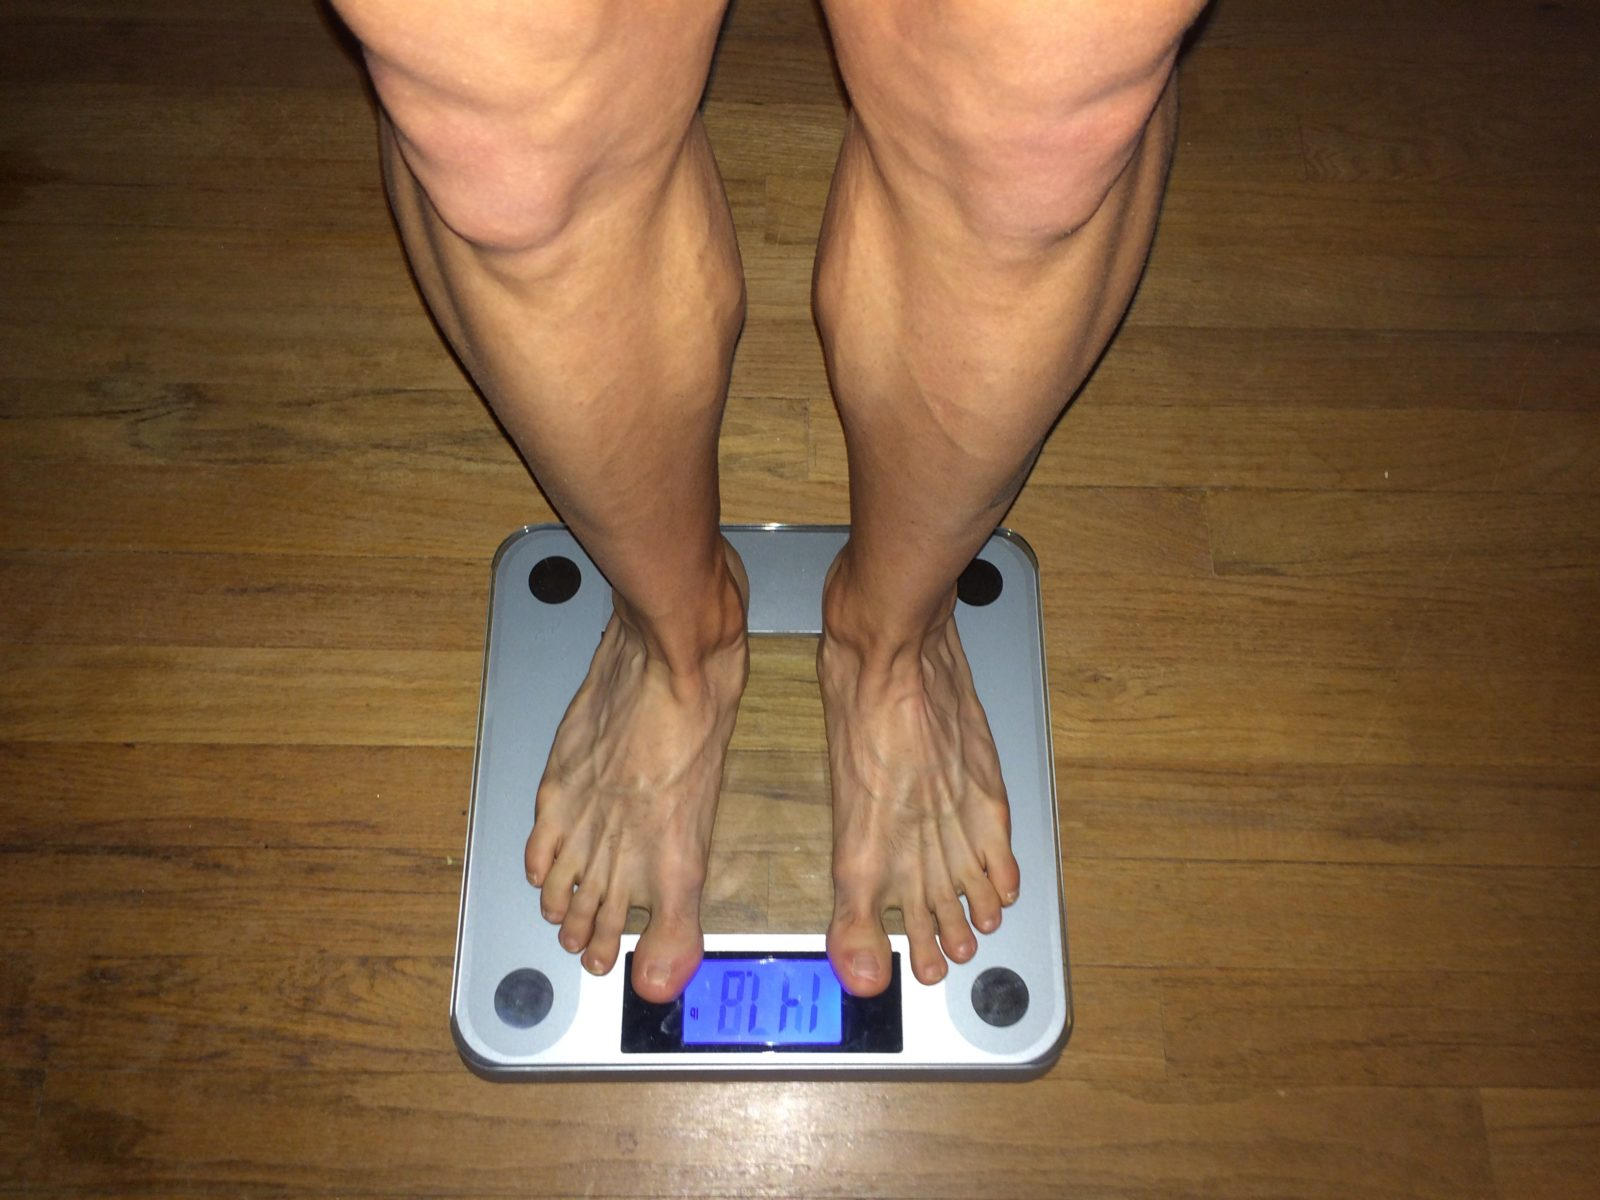 Acupuncture for Weight Loss: Research Update